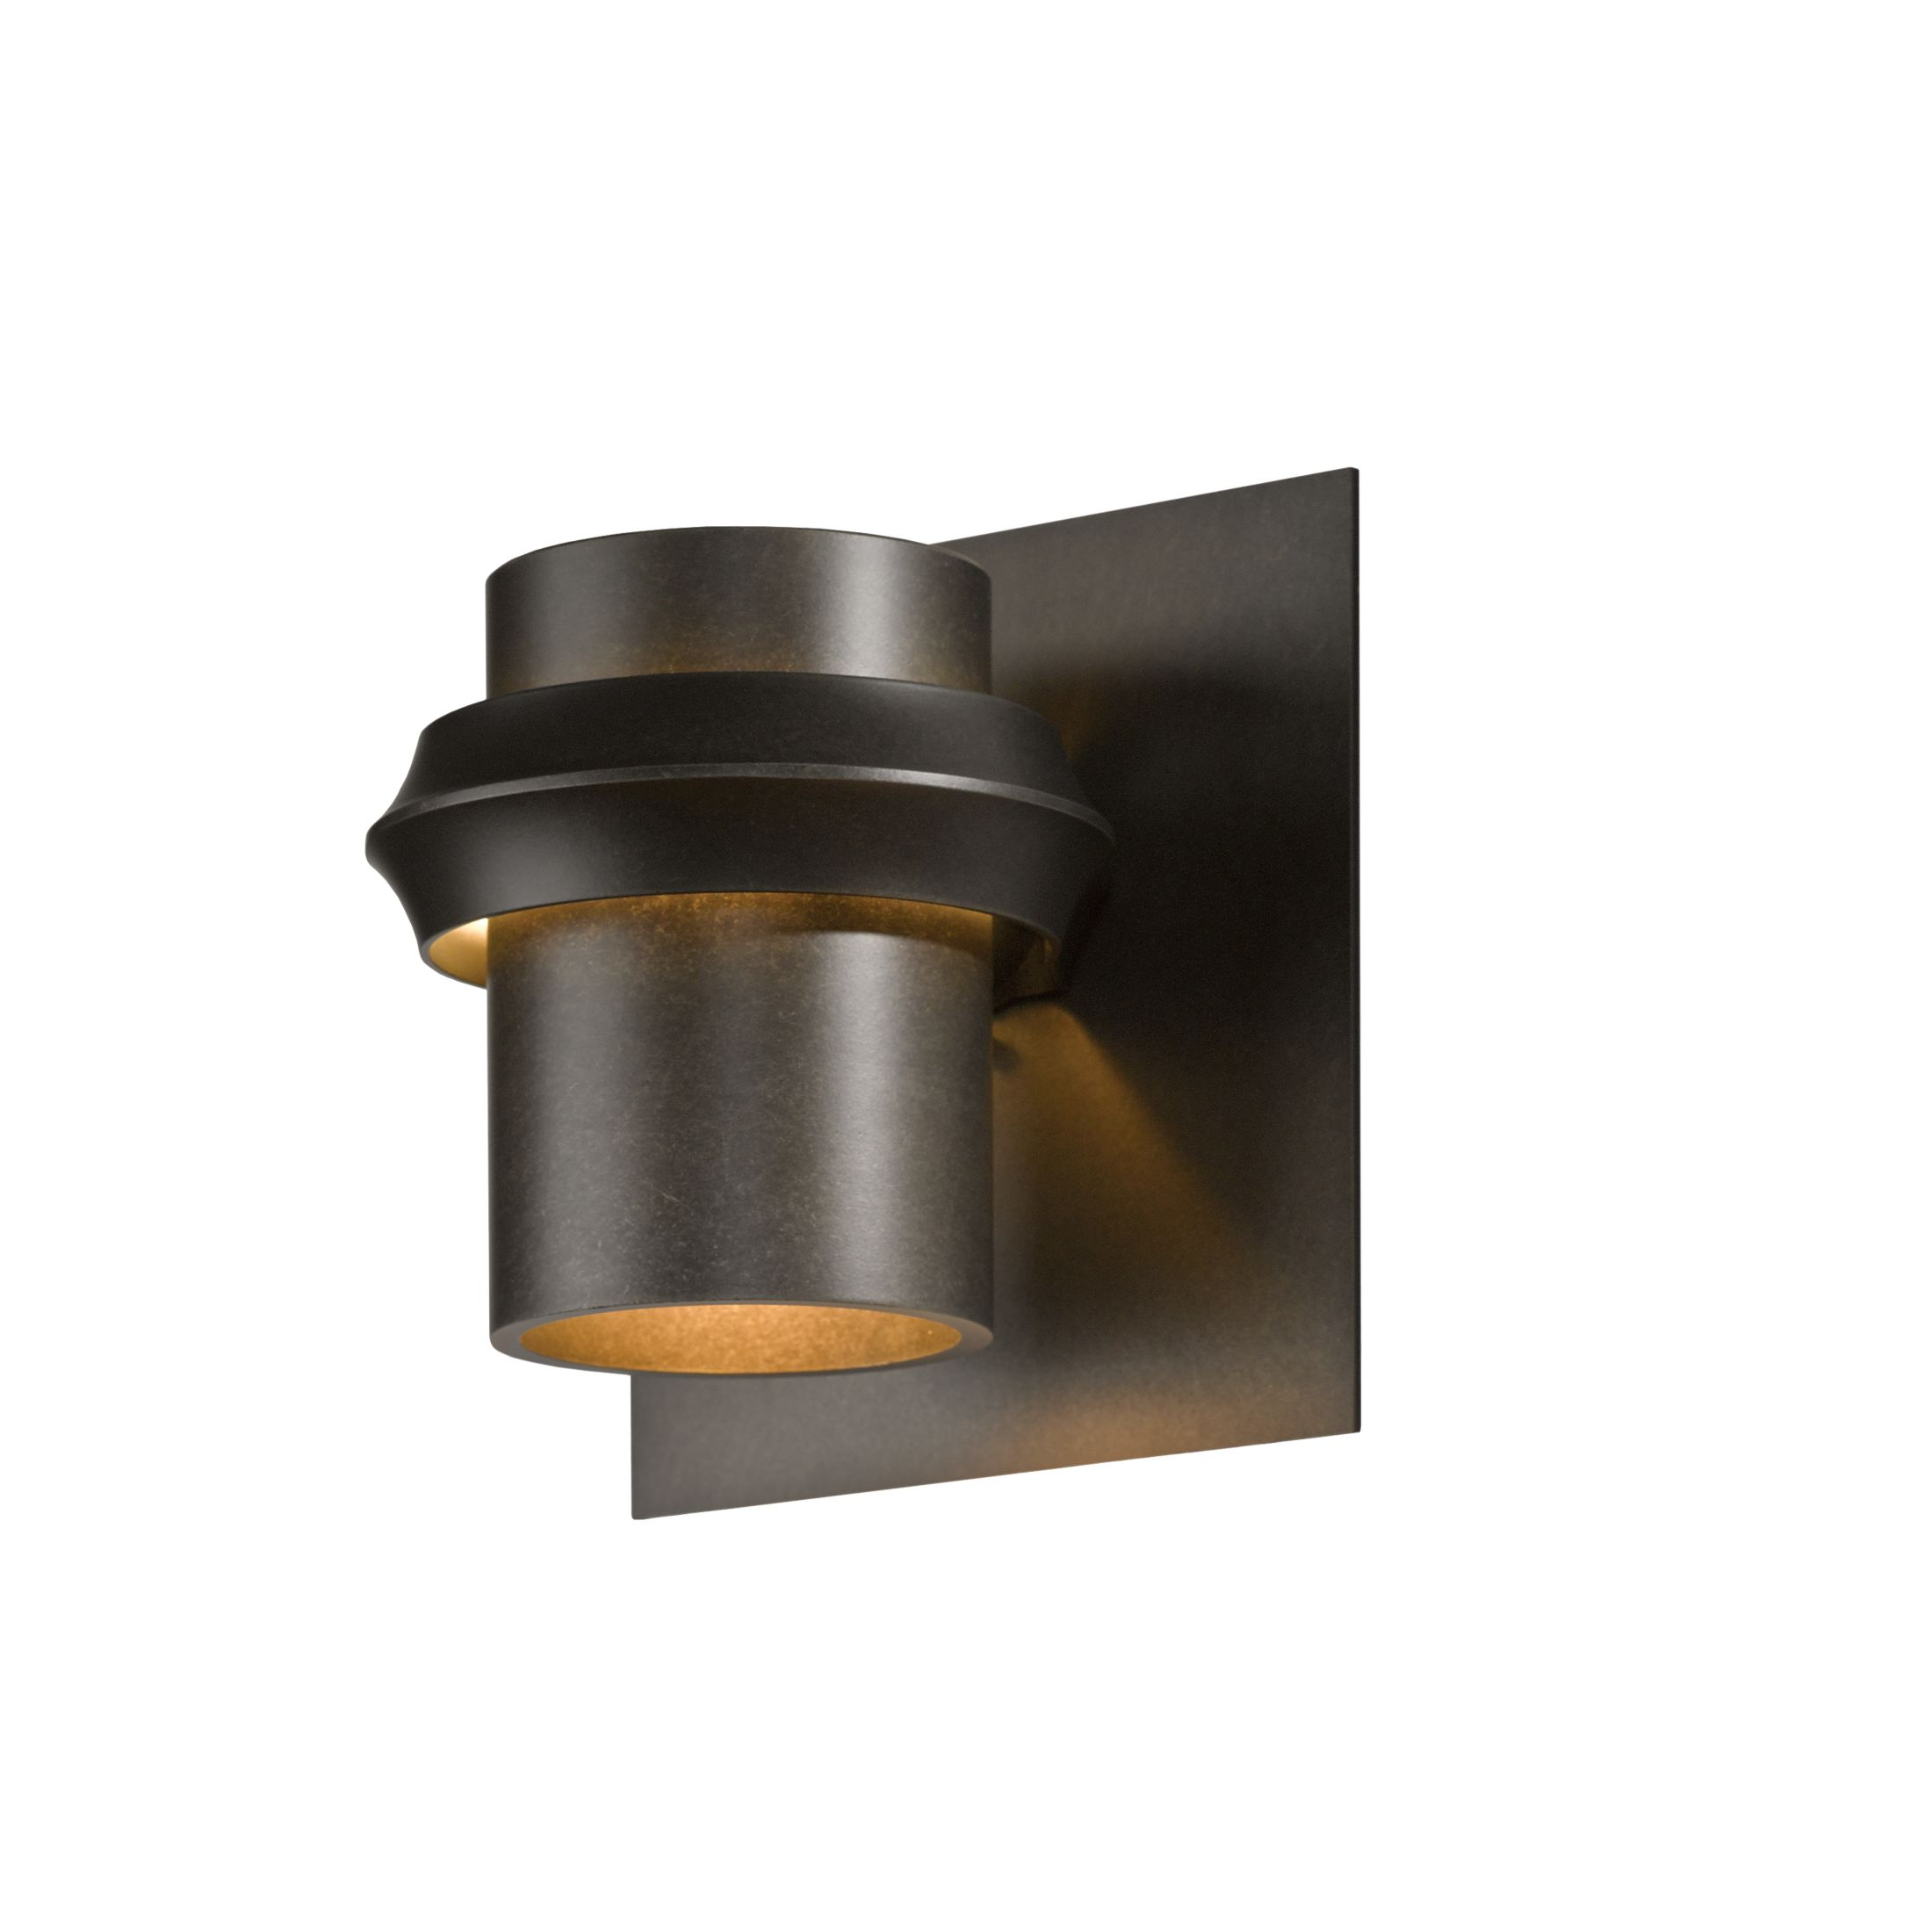 erlenmeyer skt products hubbardton forge sconce